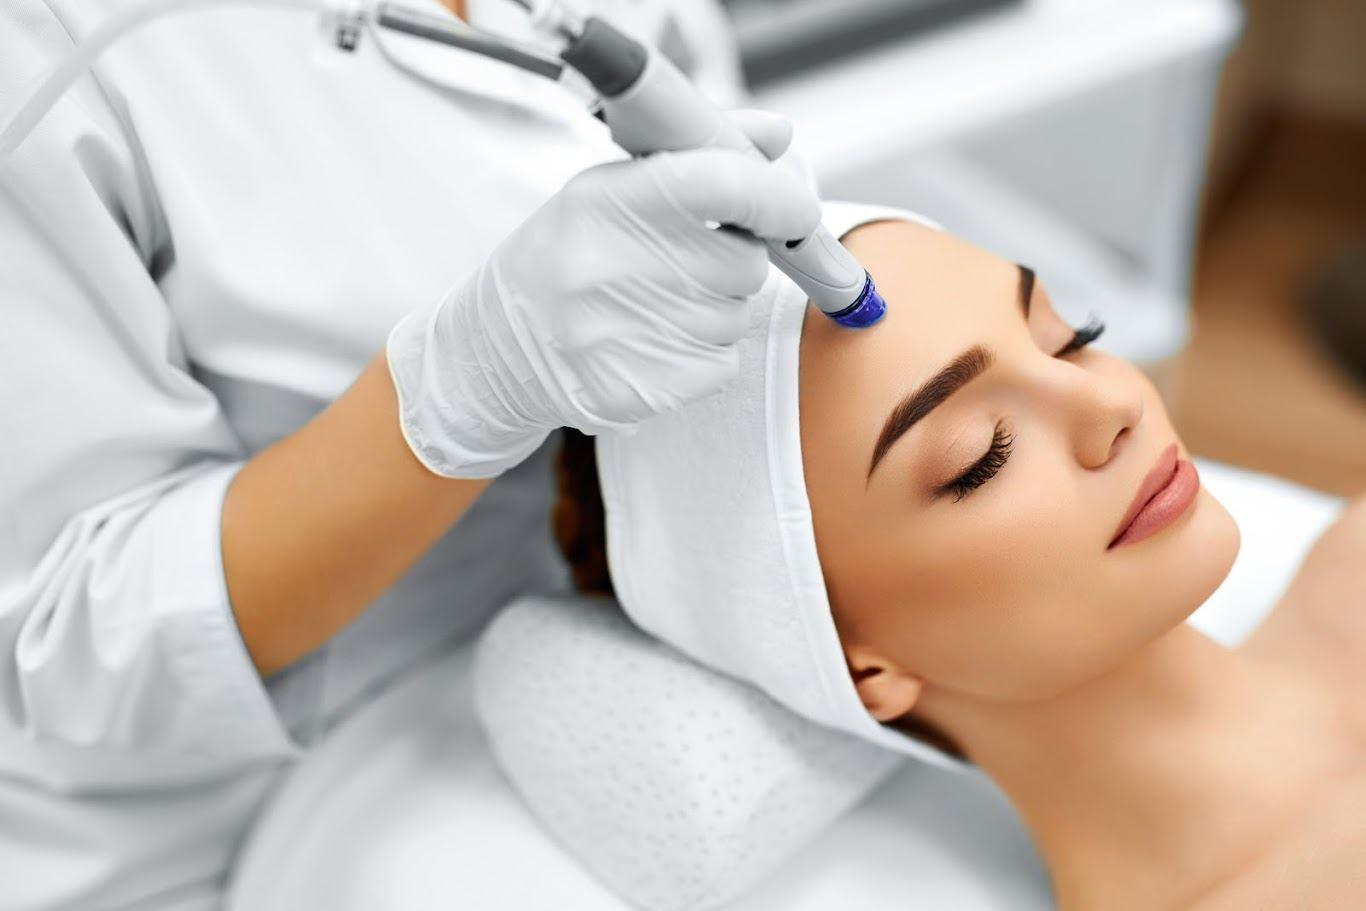 aesthetic laser – Go for the best